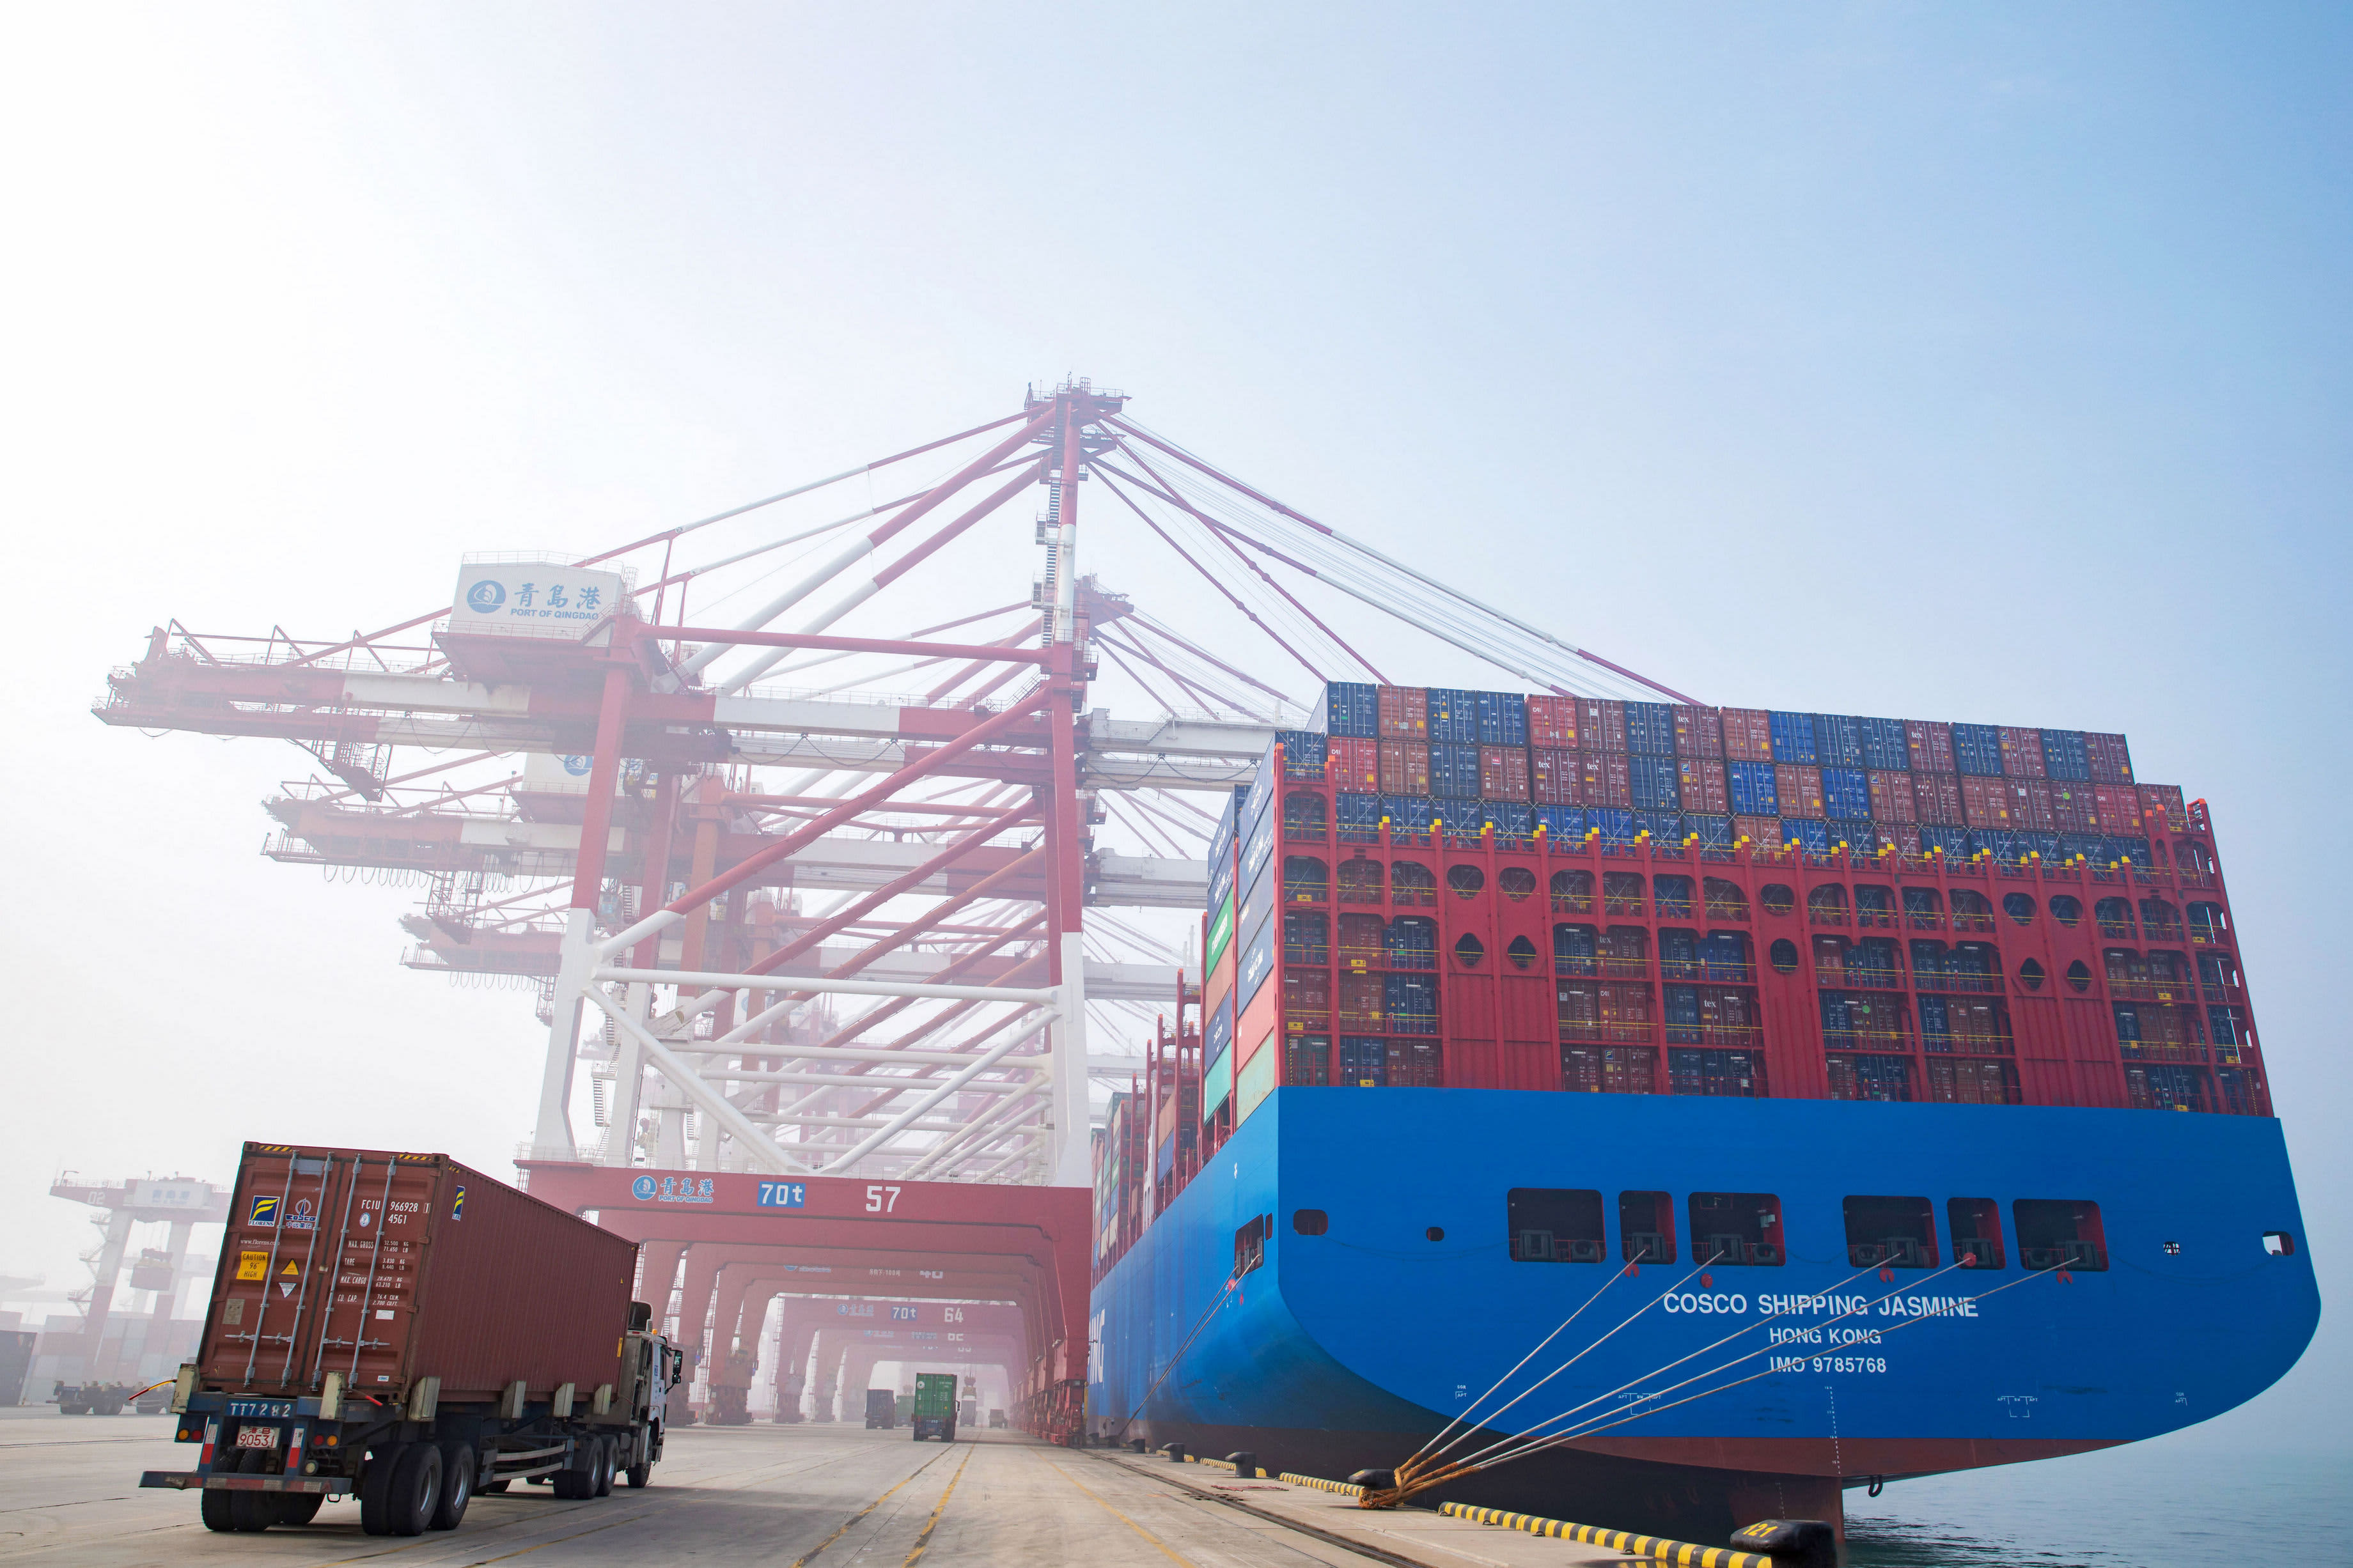 A truck moves a shipping container at Qingdao Port on January 14, 2019 in Qingdao, Shandong Province of China.